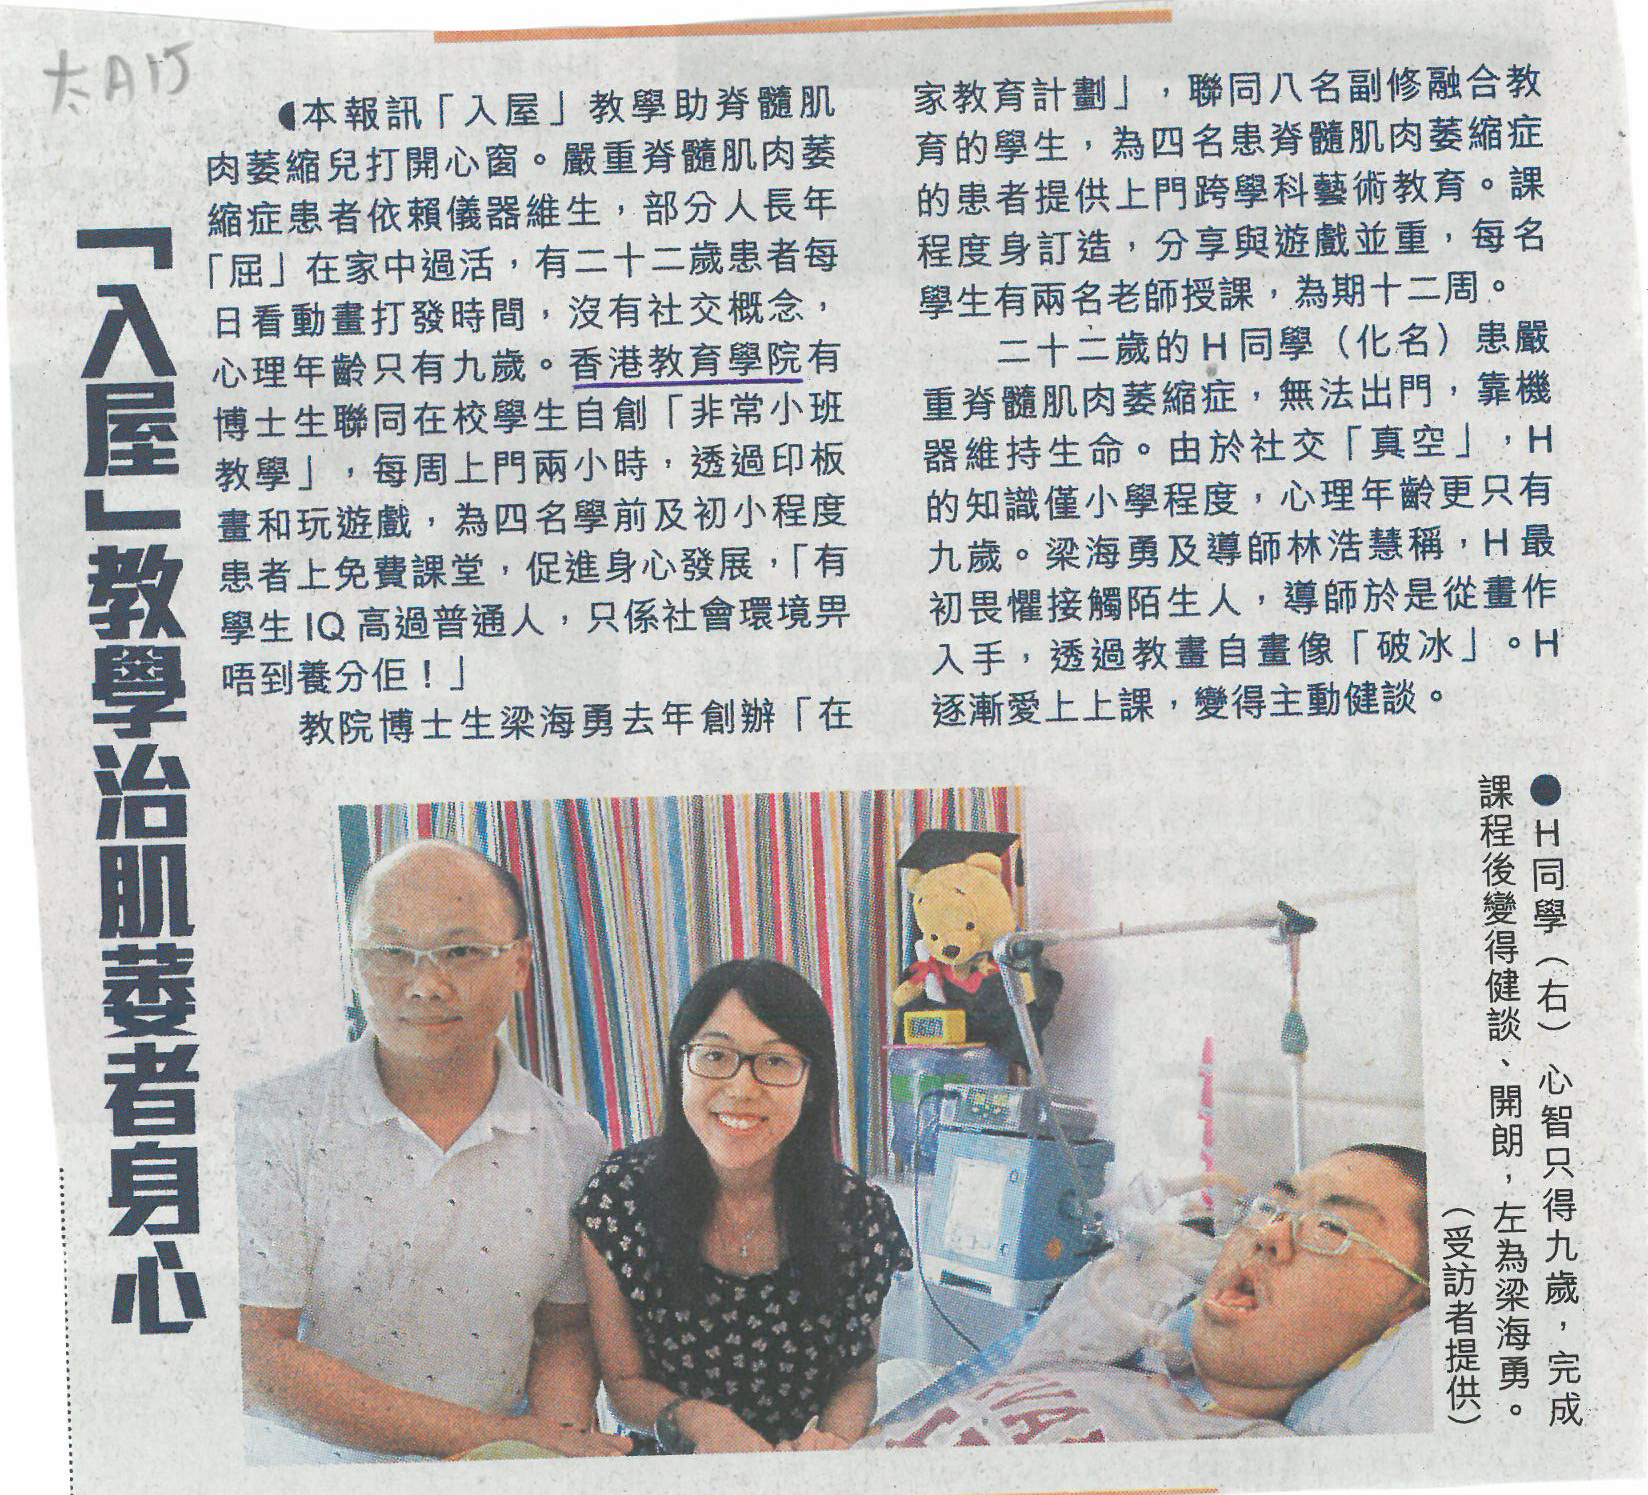 Home Project Coverage (3)_the sun 20140805 A15